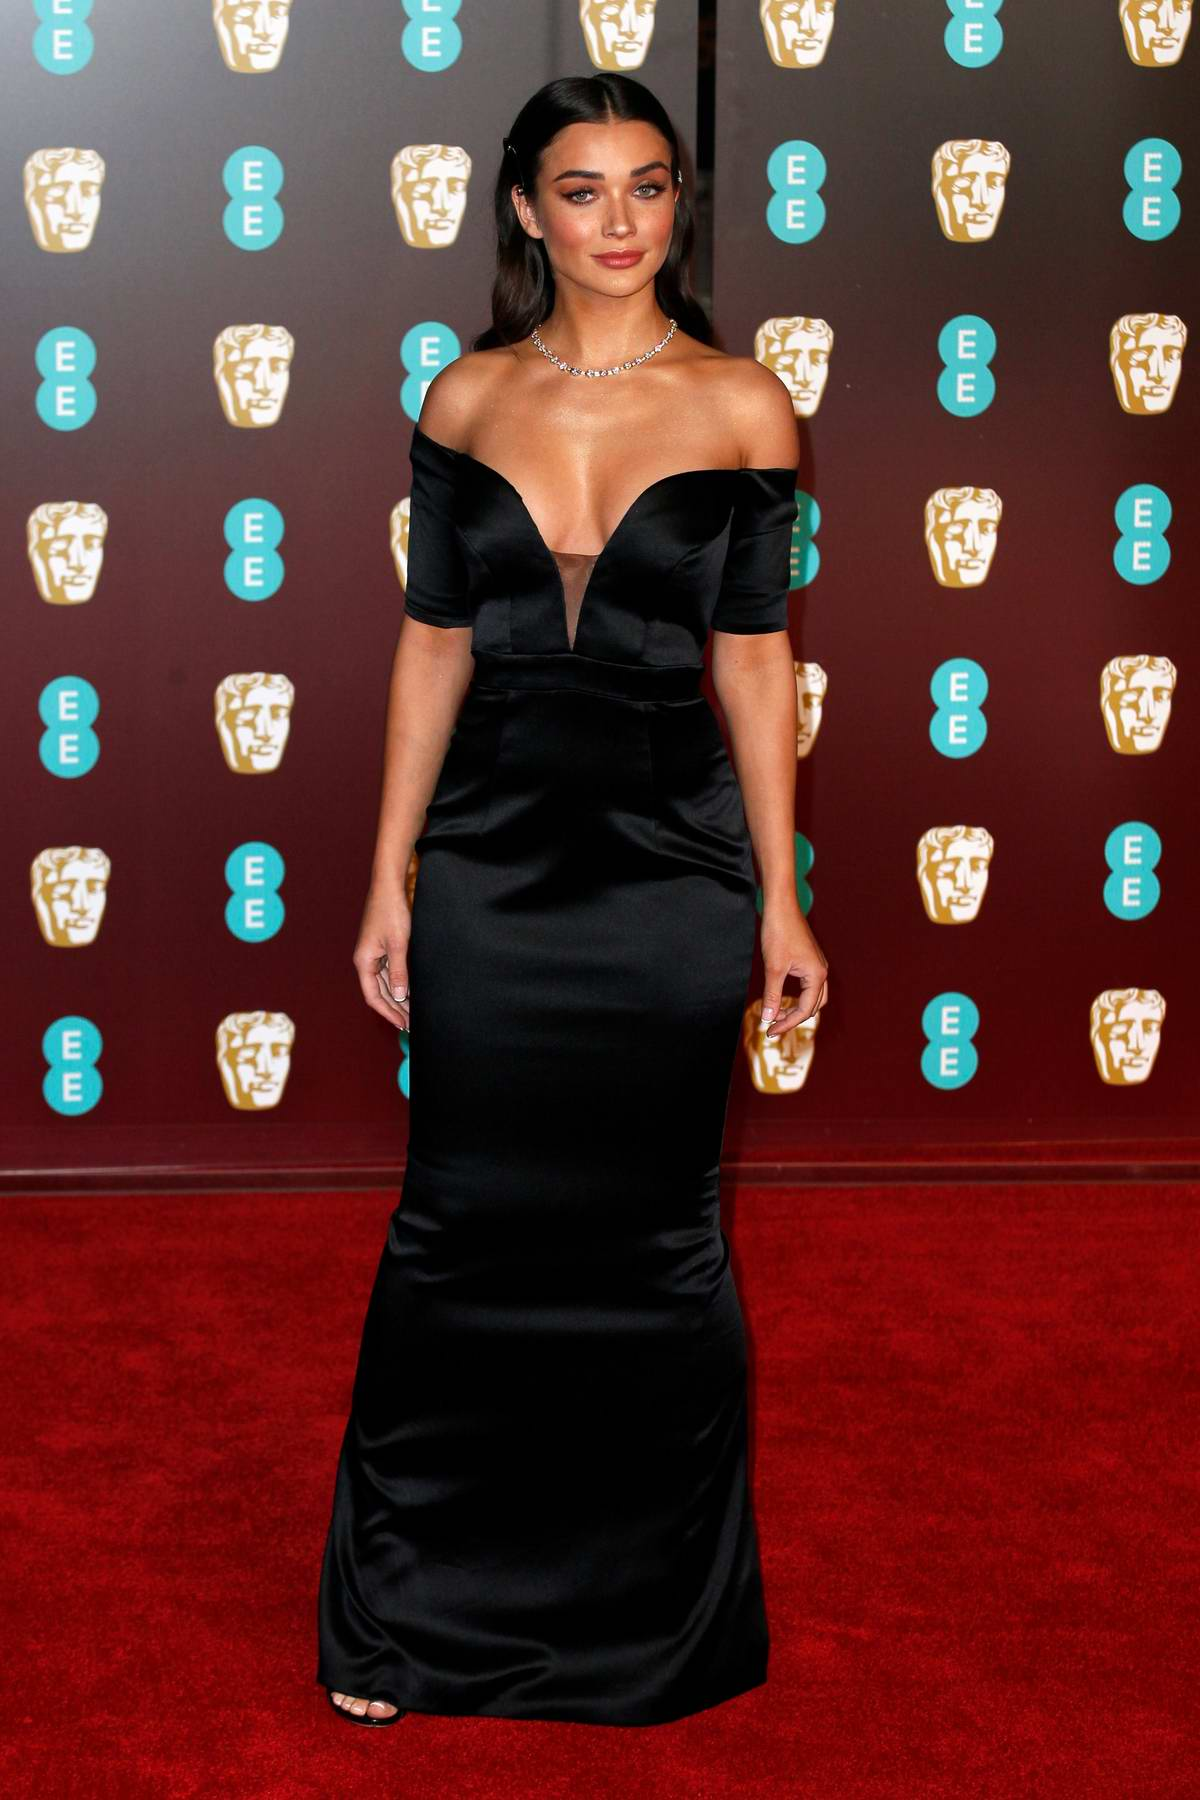 Amy Jackson attends 71st British Academy Film Awards at Royal Albert Hall in London